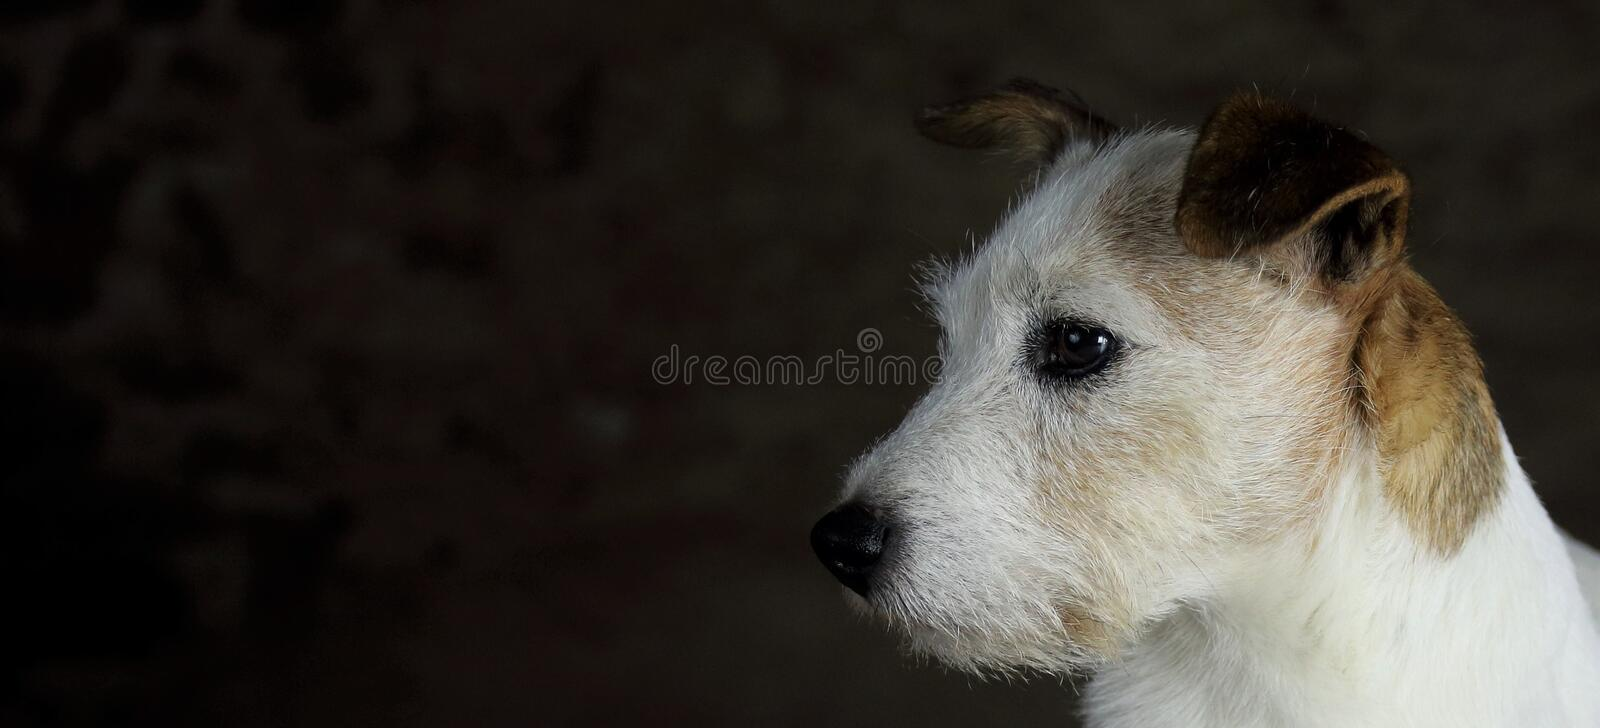 Head of white and brown Jack Russell dog with copy space. White and brown Jack Russell head with a dark background and copy space to the left royalty free stock photos